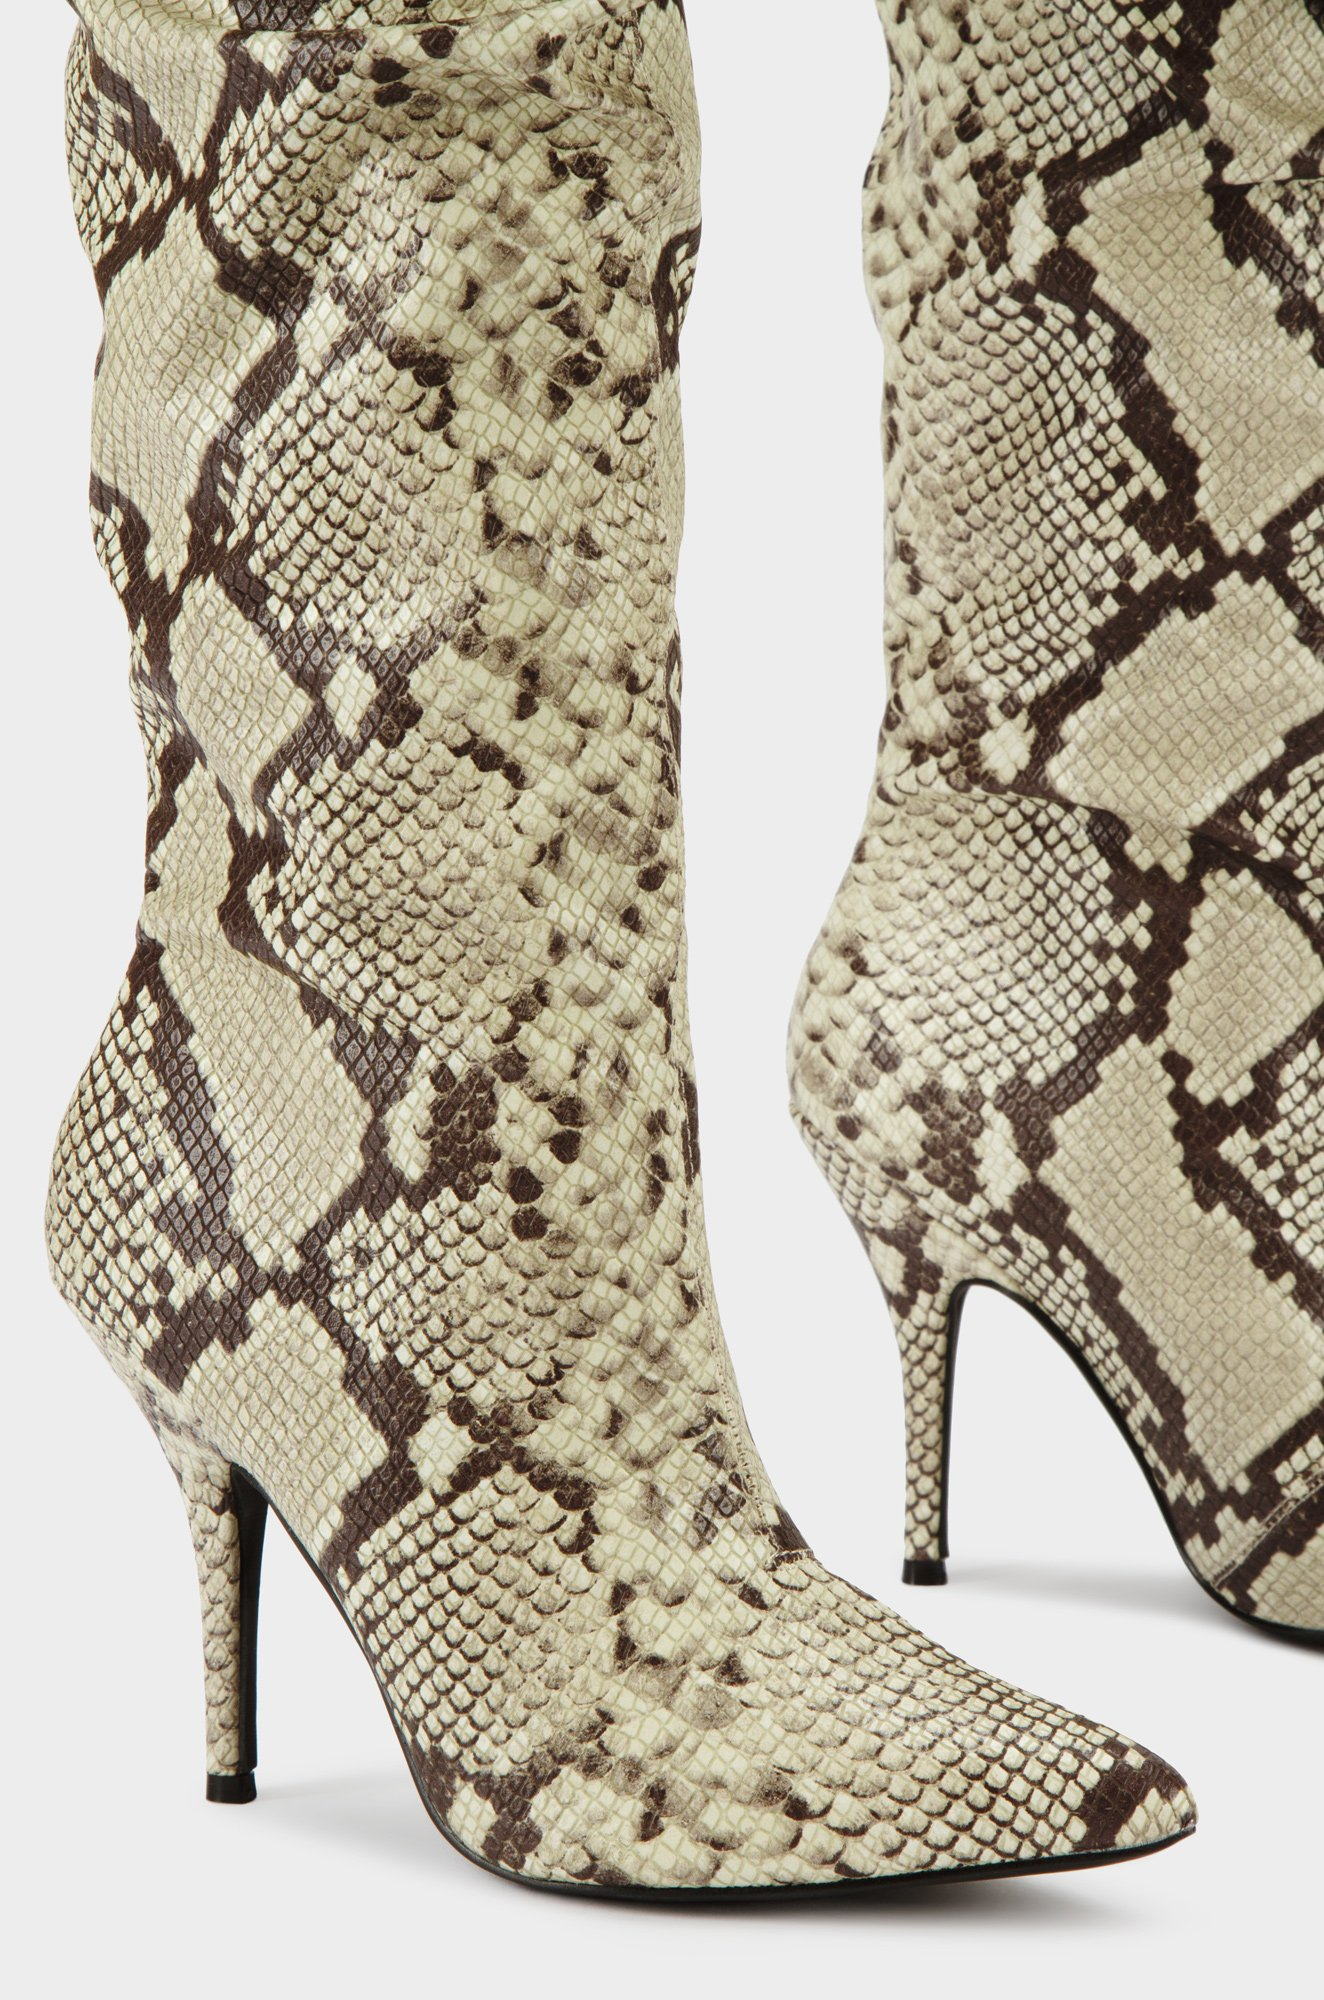 Cape-Robbin-Bown-Snake-Thigh-High-Slouch-Pointed-Toe-Over-The-Knee-Stiletto-Boot thumbnail 41